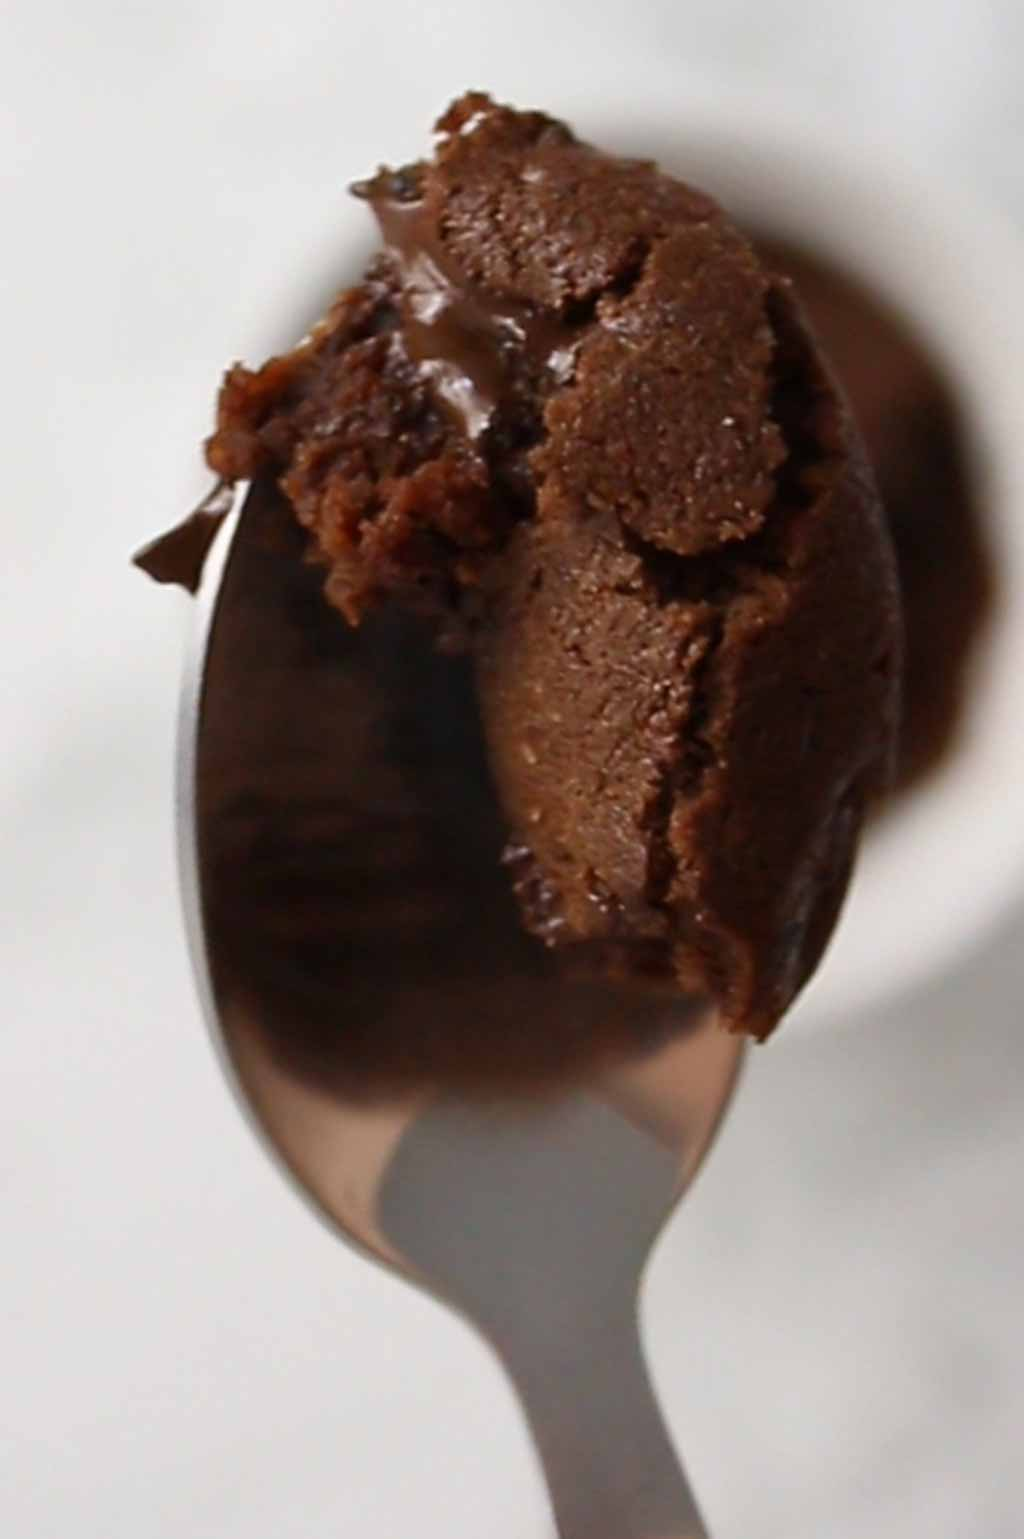 a piece of brownie on a spoon